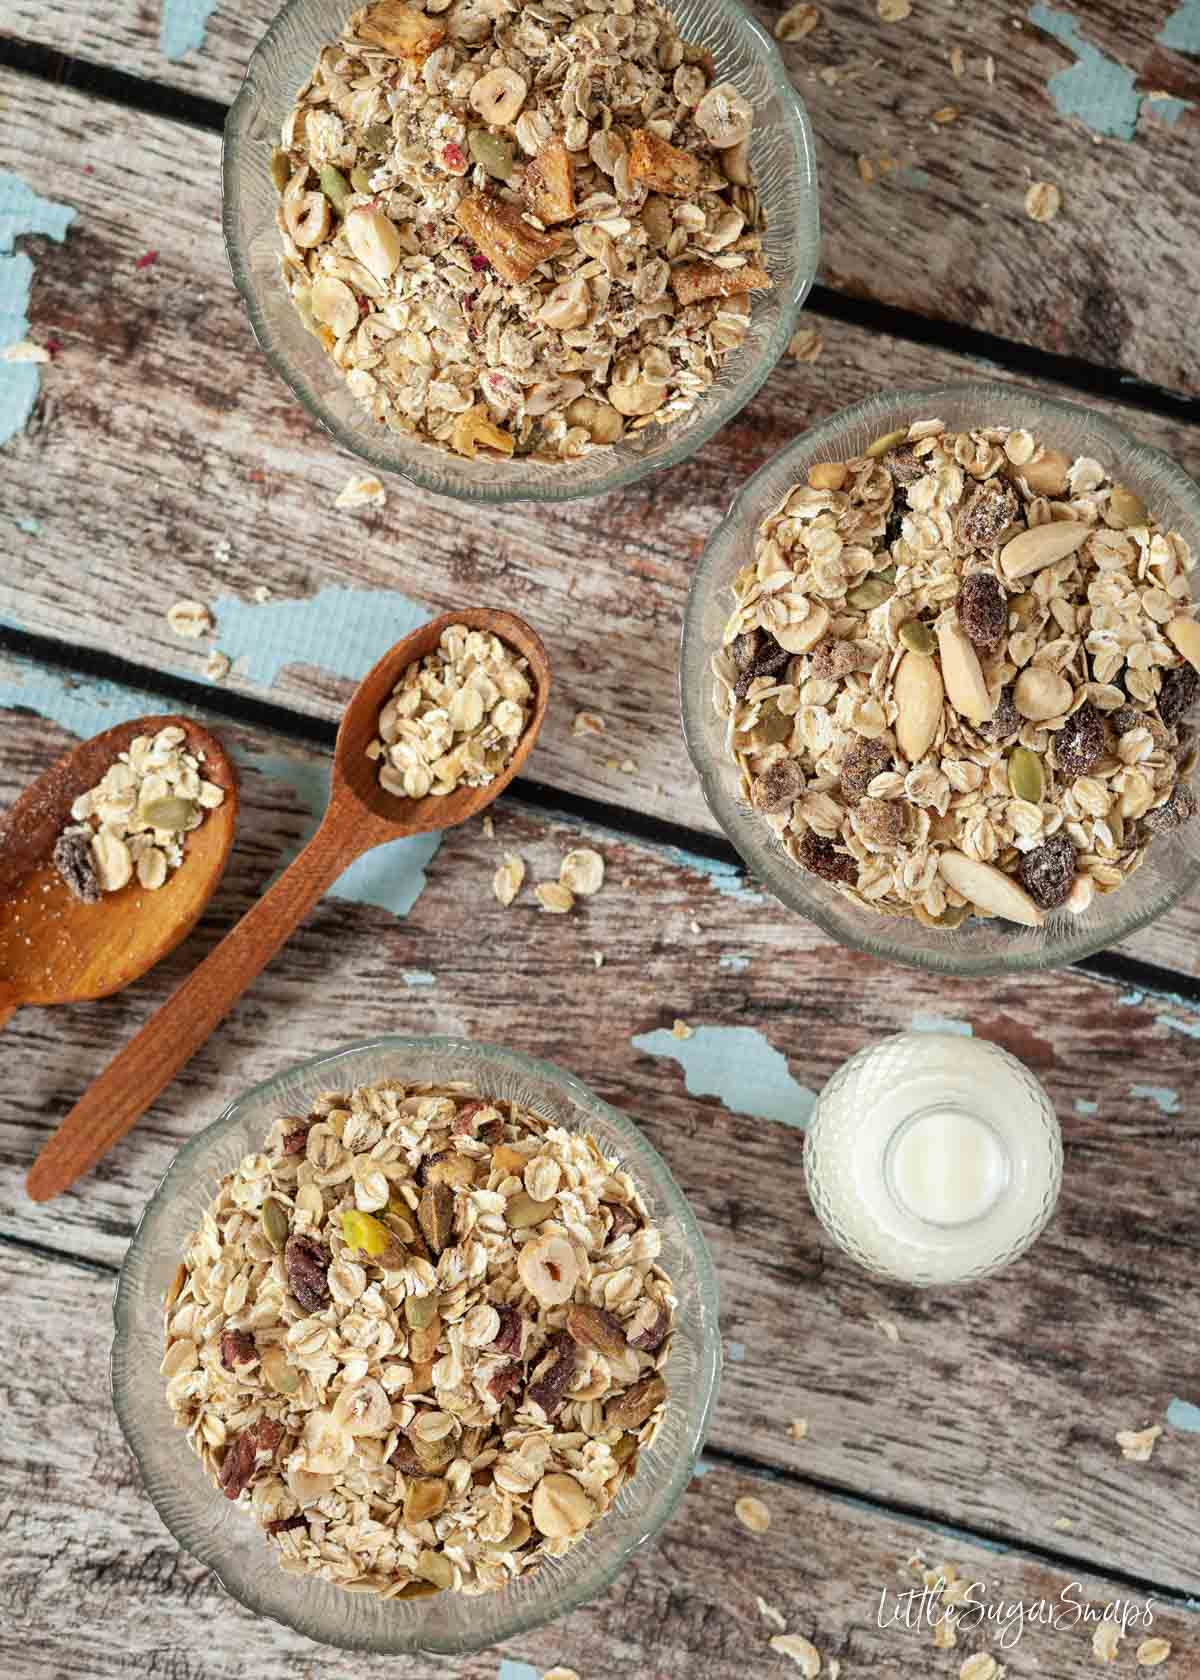 Three bowls of oats, nuts, seeds and dried fruits with a small bottle of milk